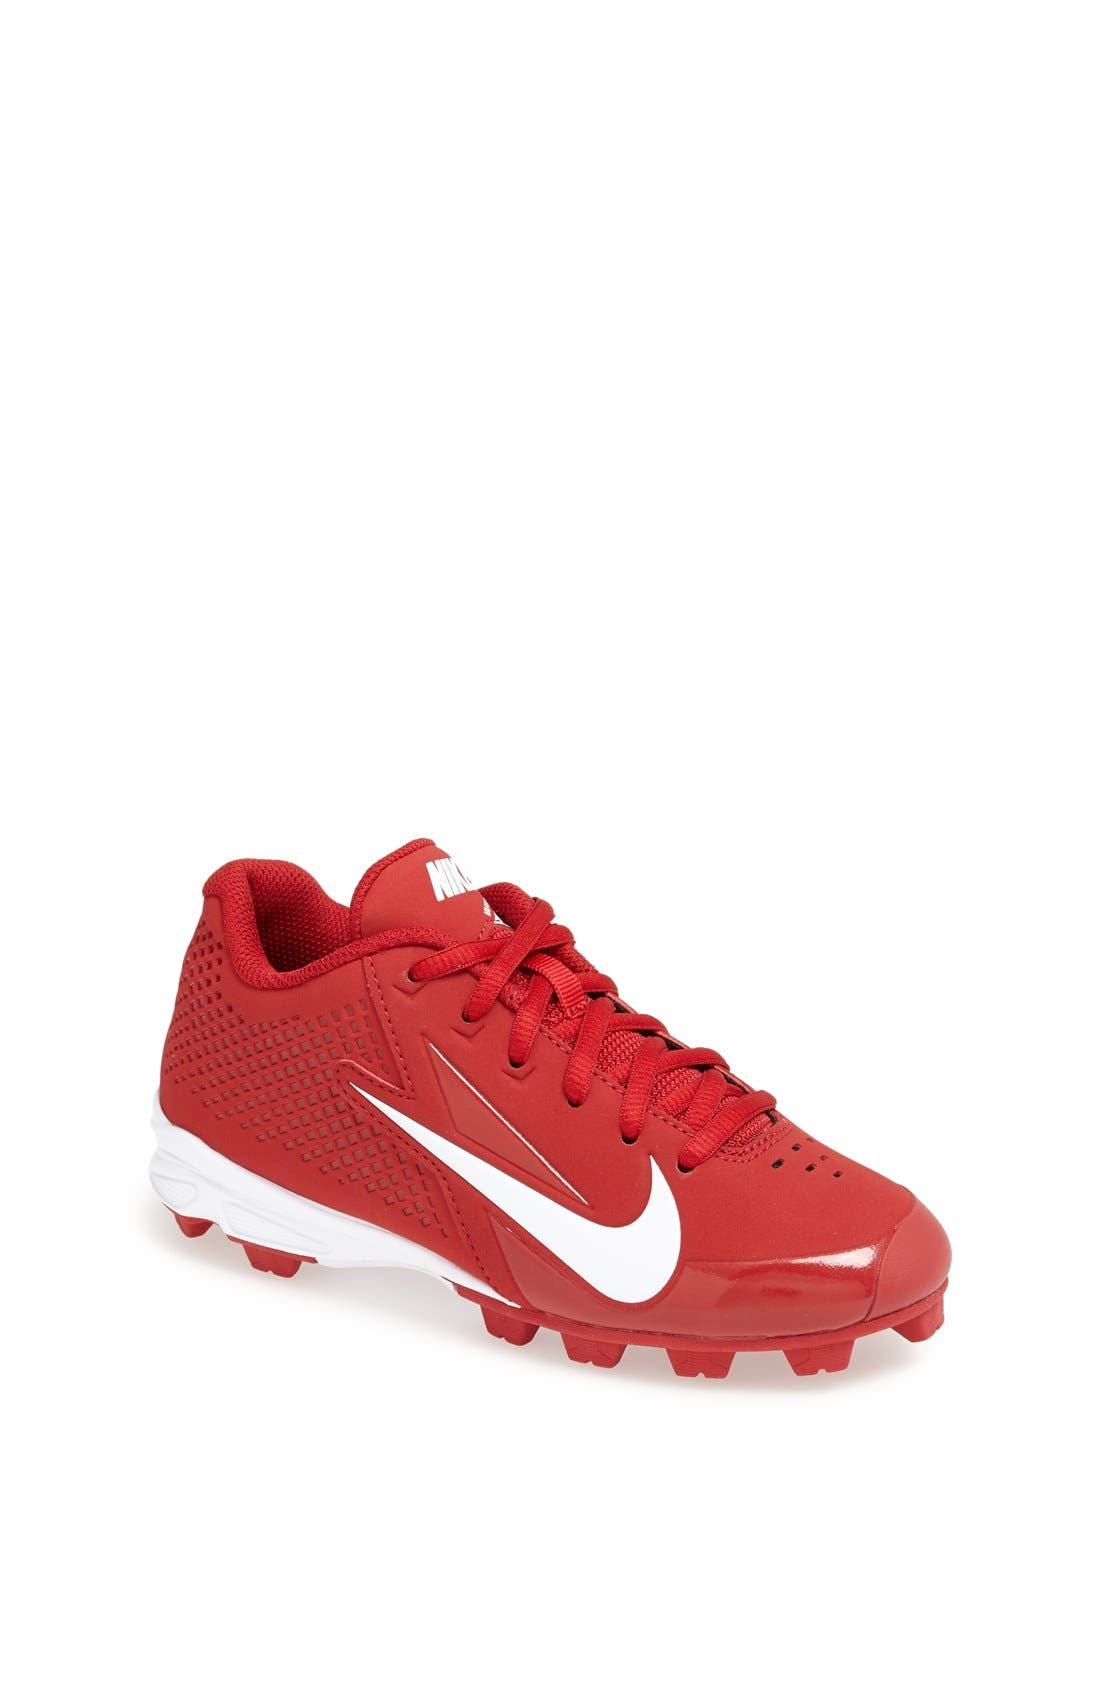 Alternate Image 1 Selected - Nike 'Vapor Keystone Low' Baseball Cleat  (Little Kid & Big Kid)